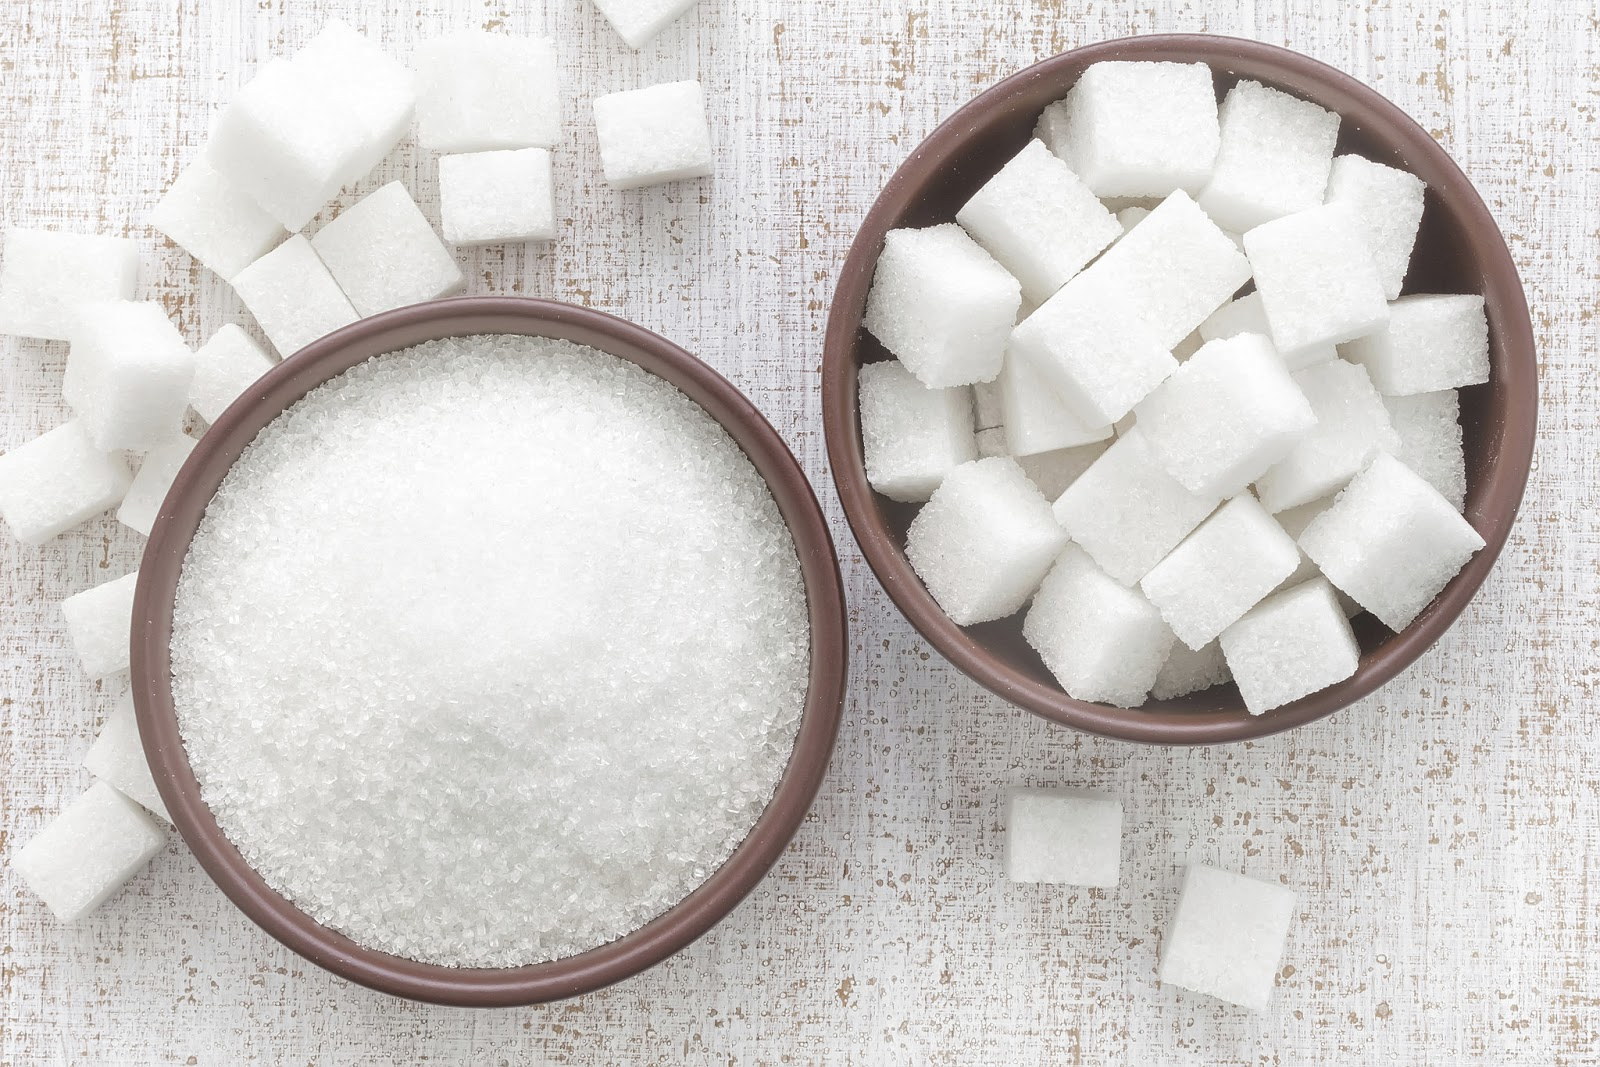 How Can We Control Sugar in Our Diets?